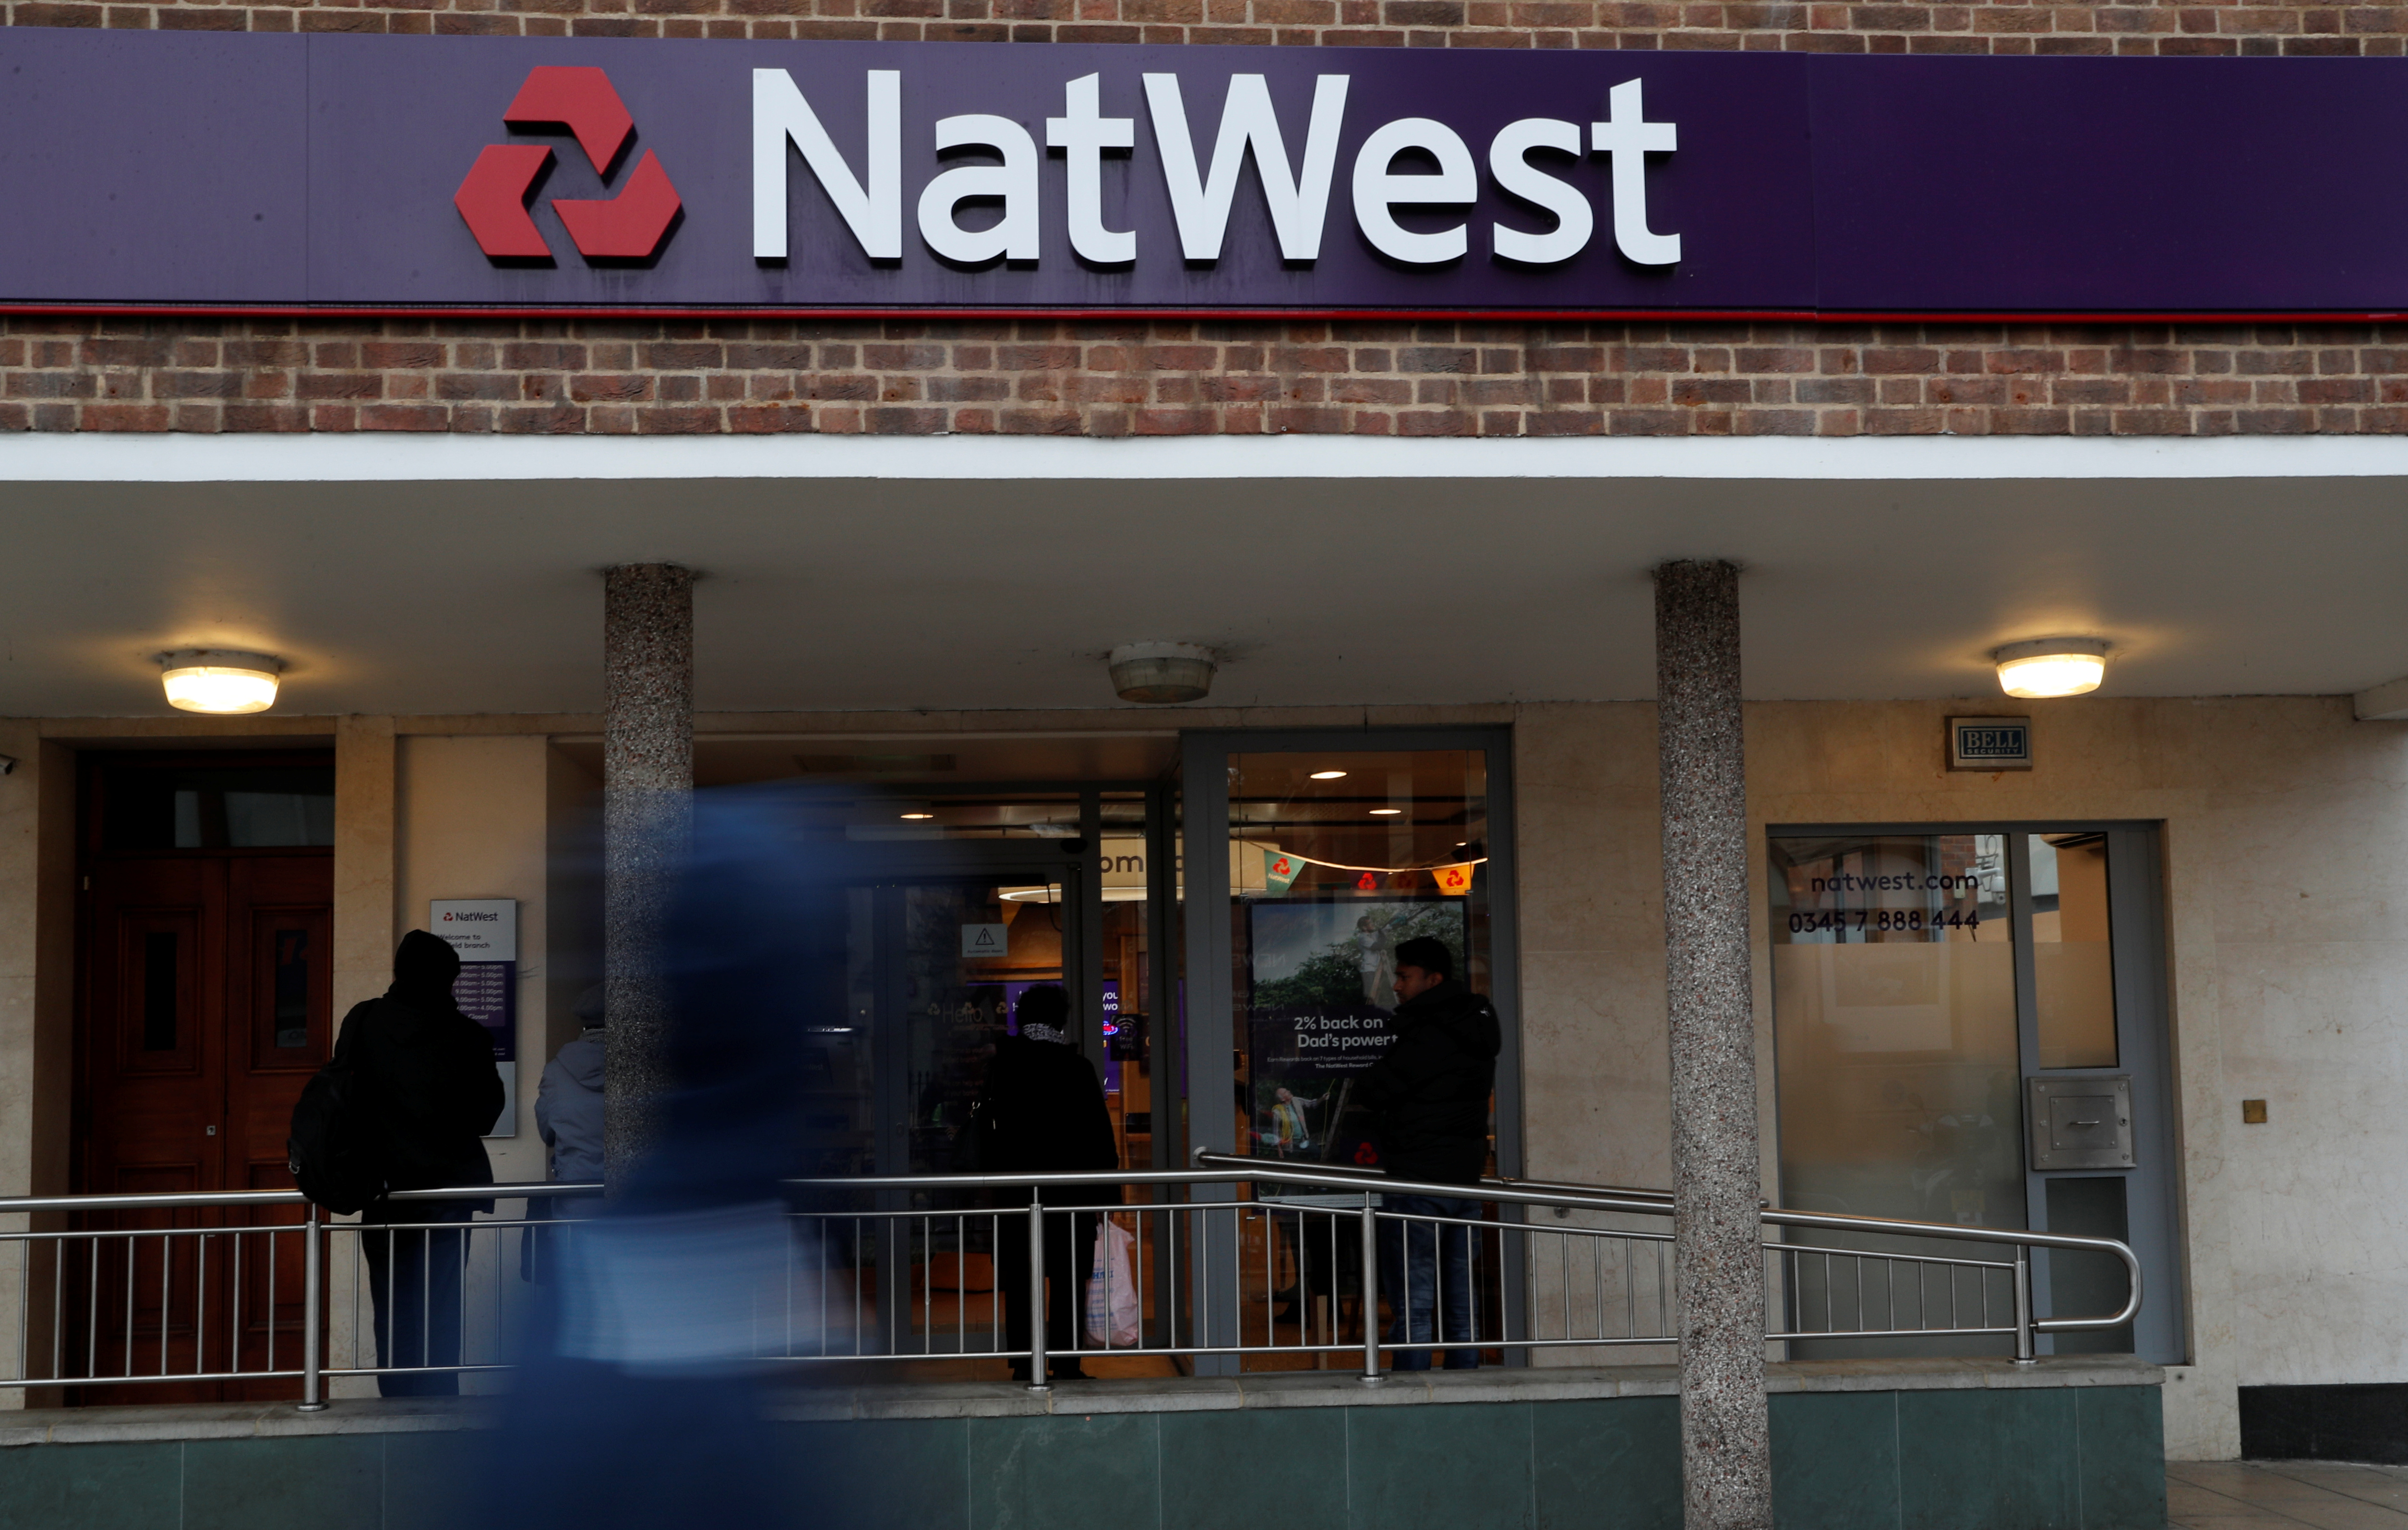 The logo of NatWest Bank, part of the Royal Bank of Scotland group is seen outside a branch in Enfield, London Britain November 15, 2017. REUTERS/John Sibley